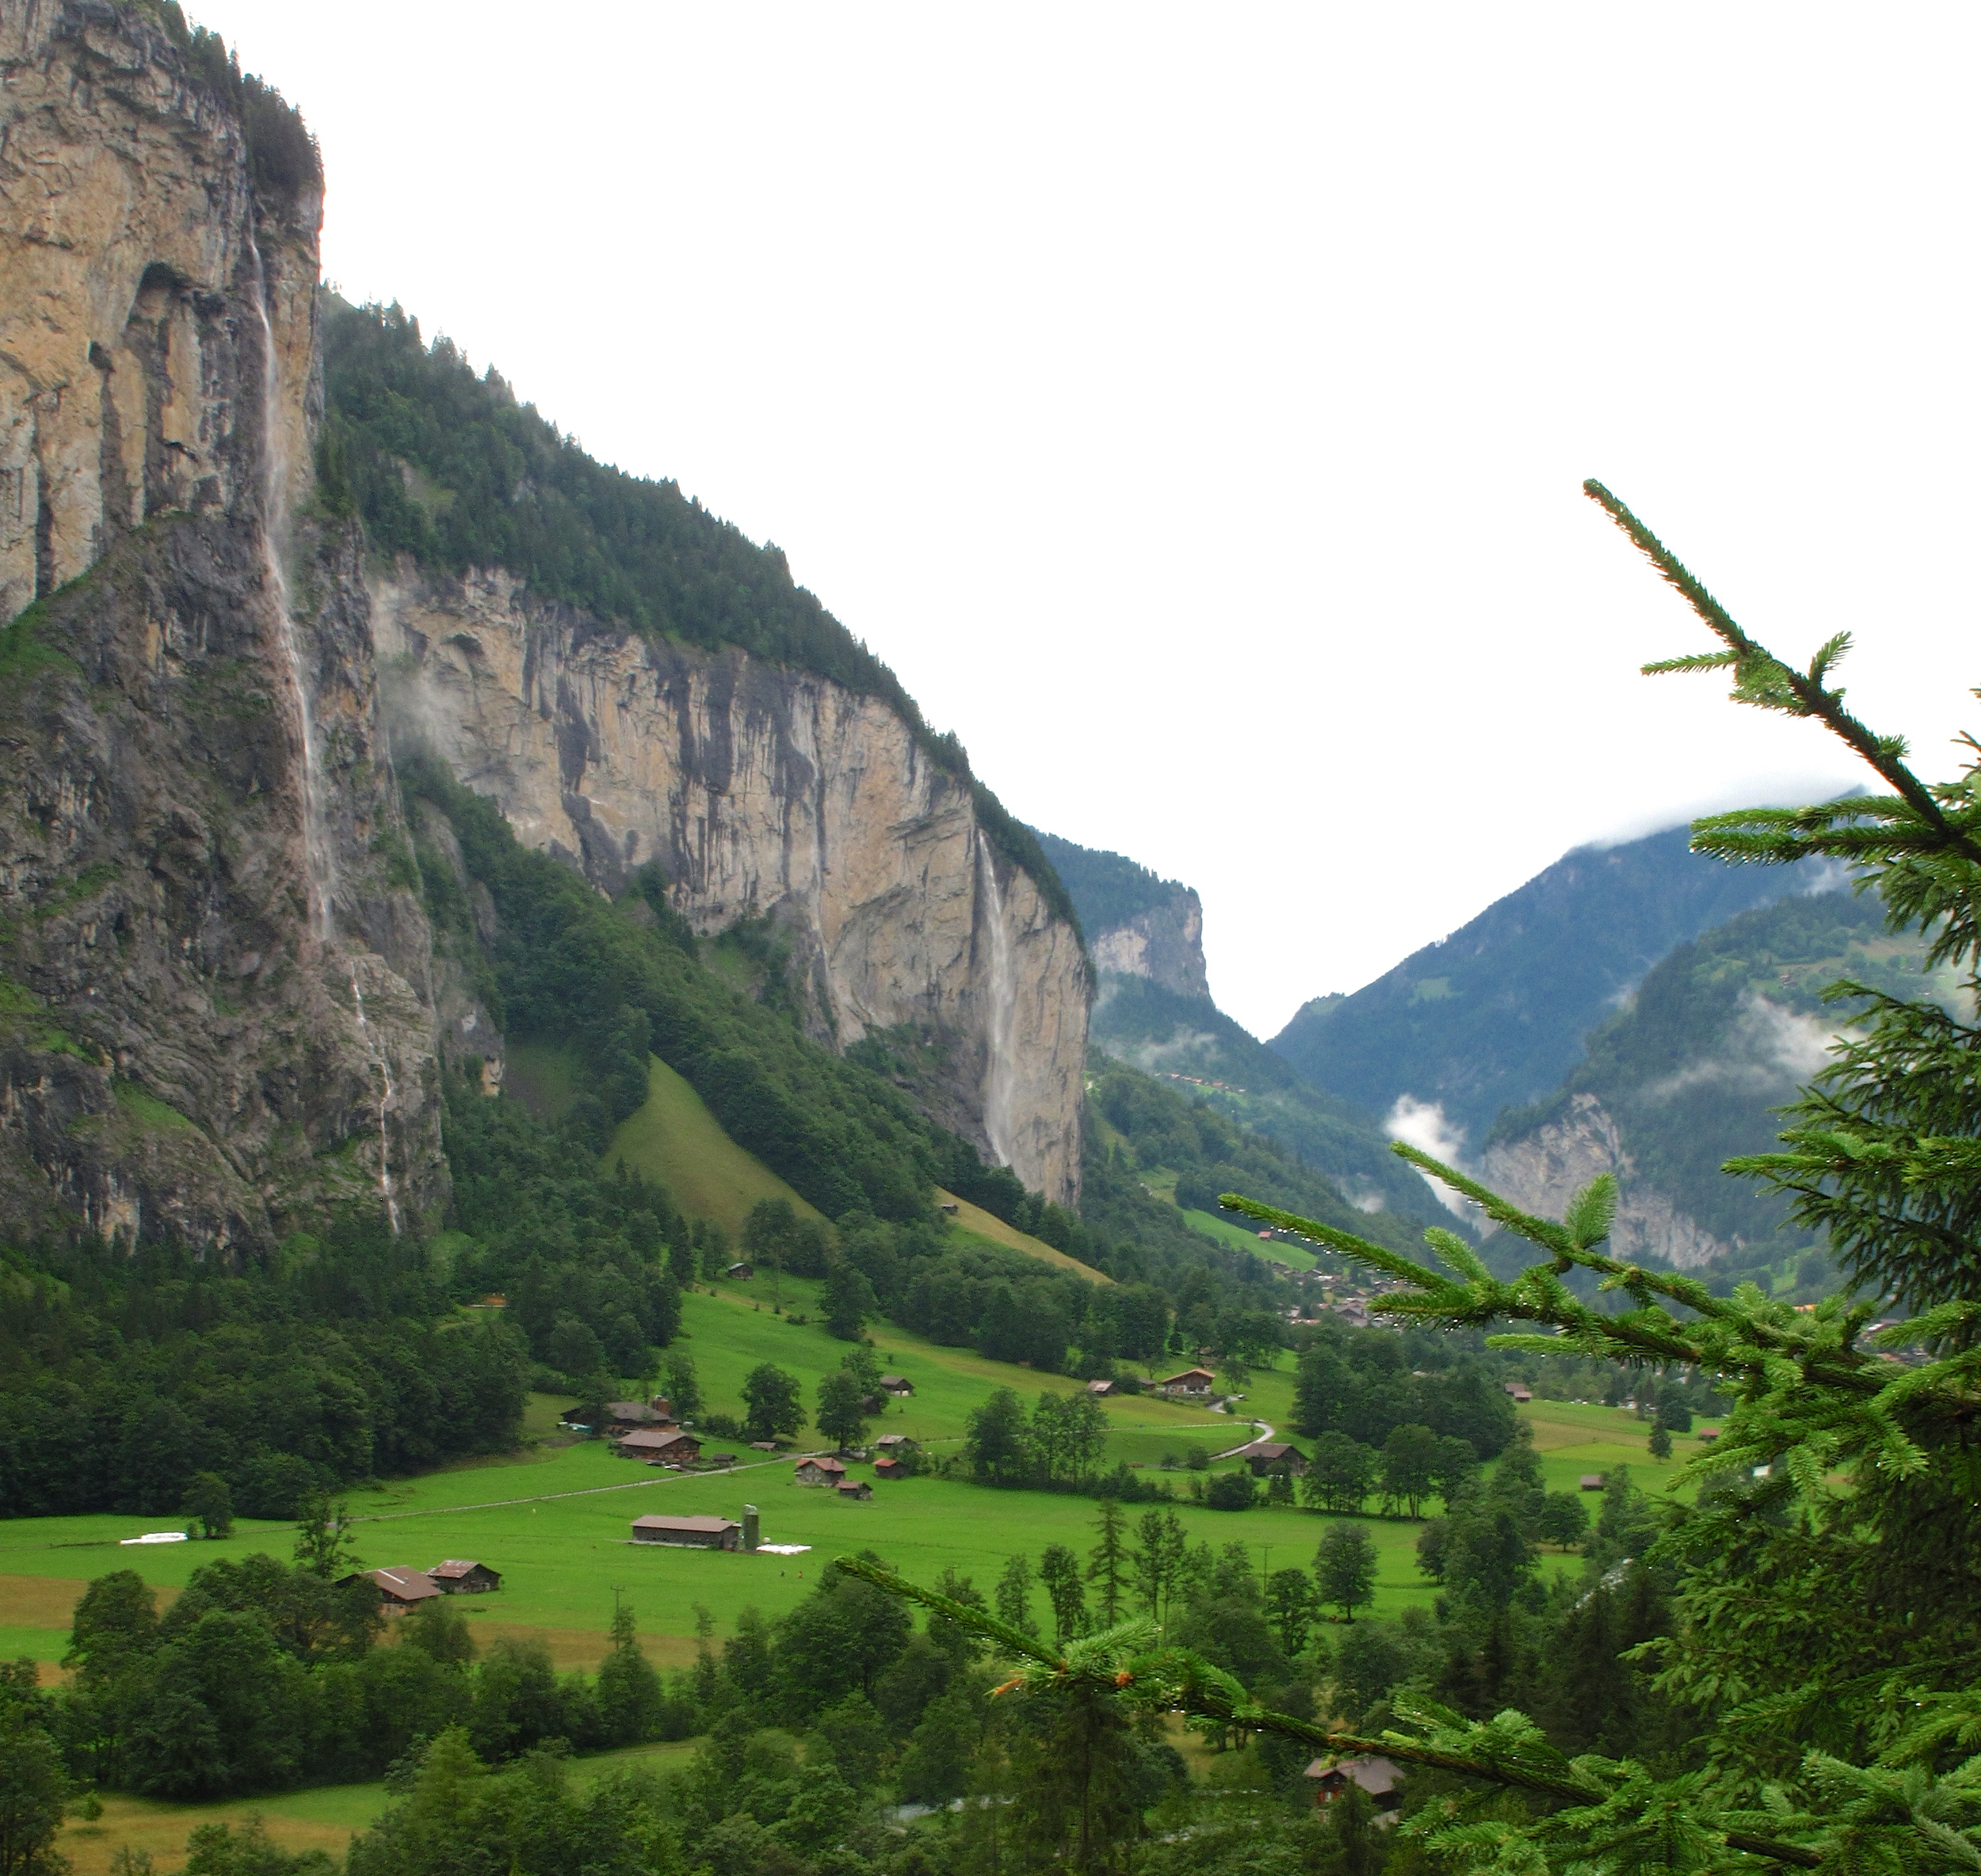 The Lauterbrunnen Valley, Switzerland - a green valley bordered by high mountains